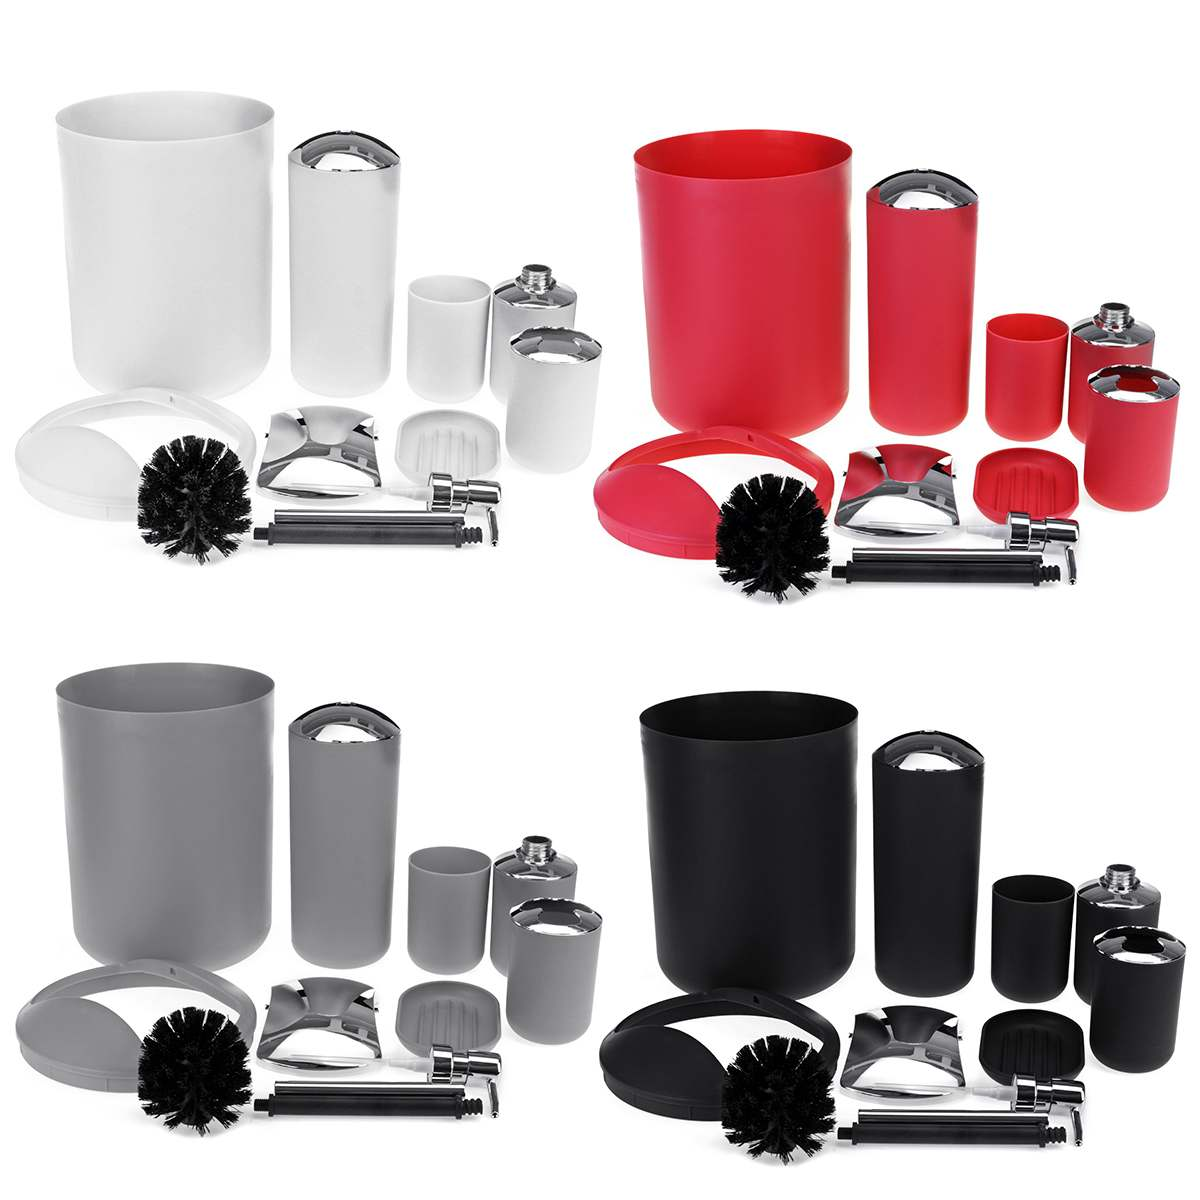 6Pcs/Set Luxury Bathroom Accessories Plastic Toothbrush Holder Cup Soap Dispenser Dish Toilet Brush Holder Trash Can Set image